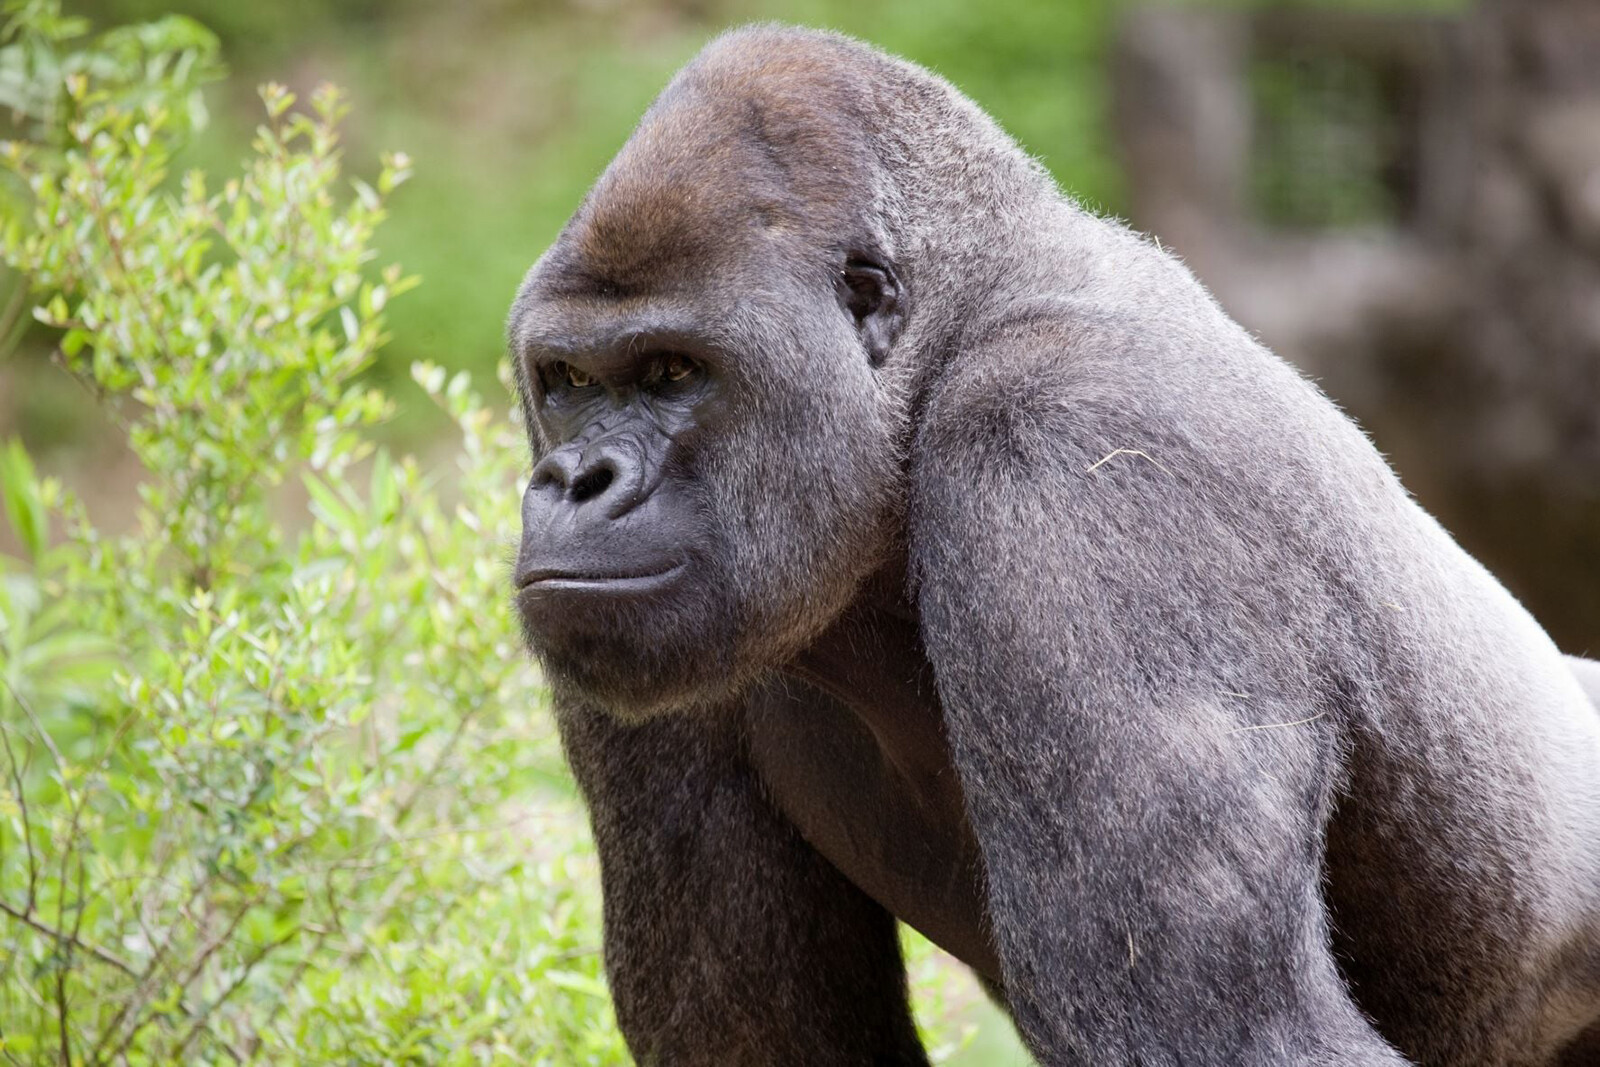 Gorillas at Zoo Atlanta being treated after initial testing reveals Covid-19 virus